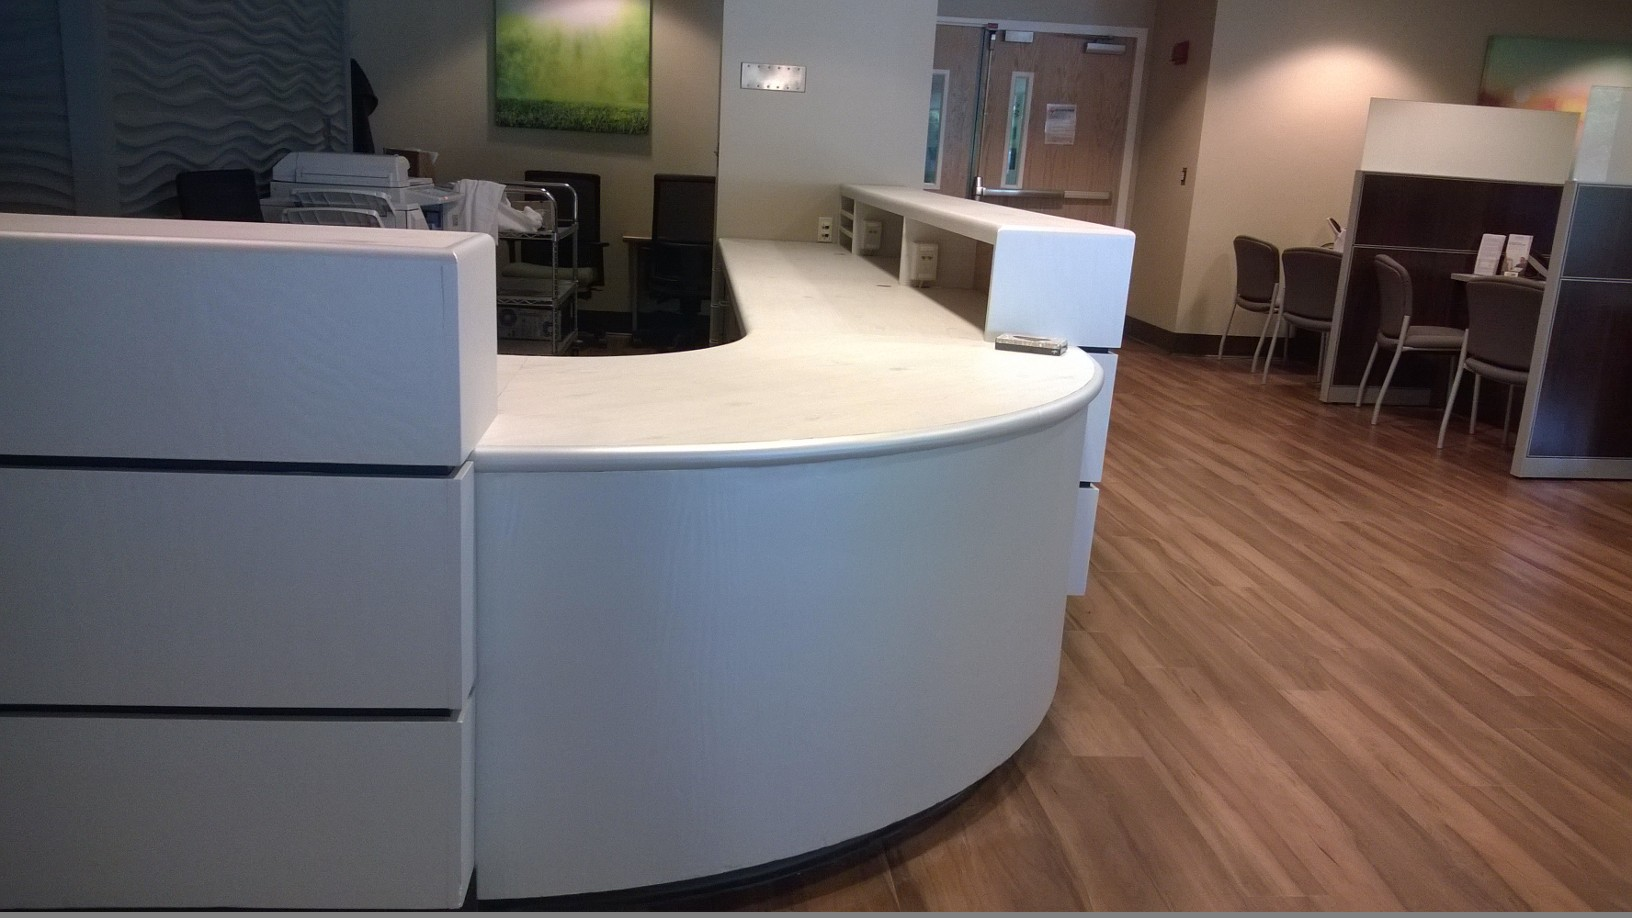 Install of DesignTex DiNoc product over existing reception desk. Specified by IIS, installed by Who Did That, Inc.